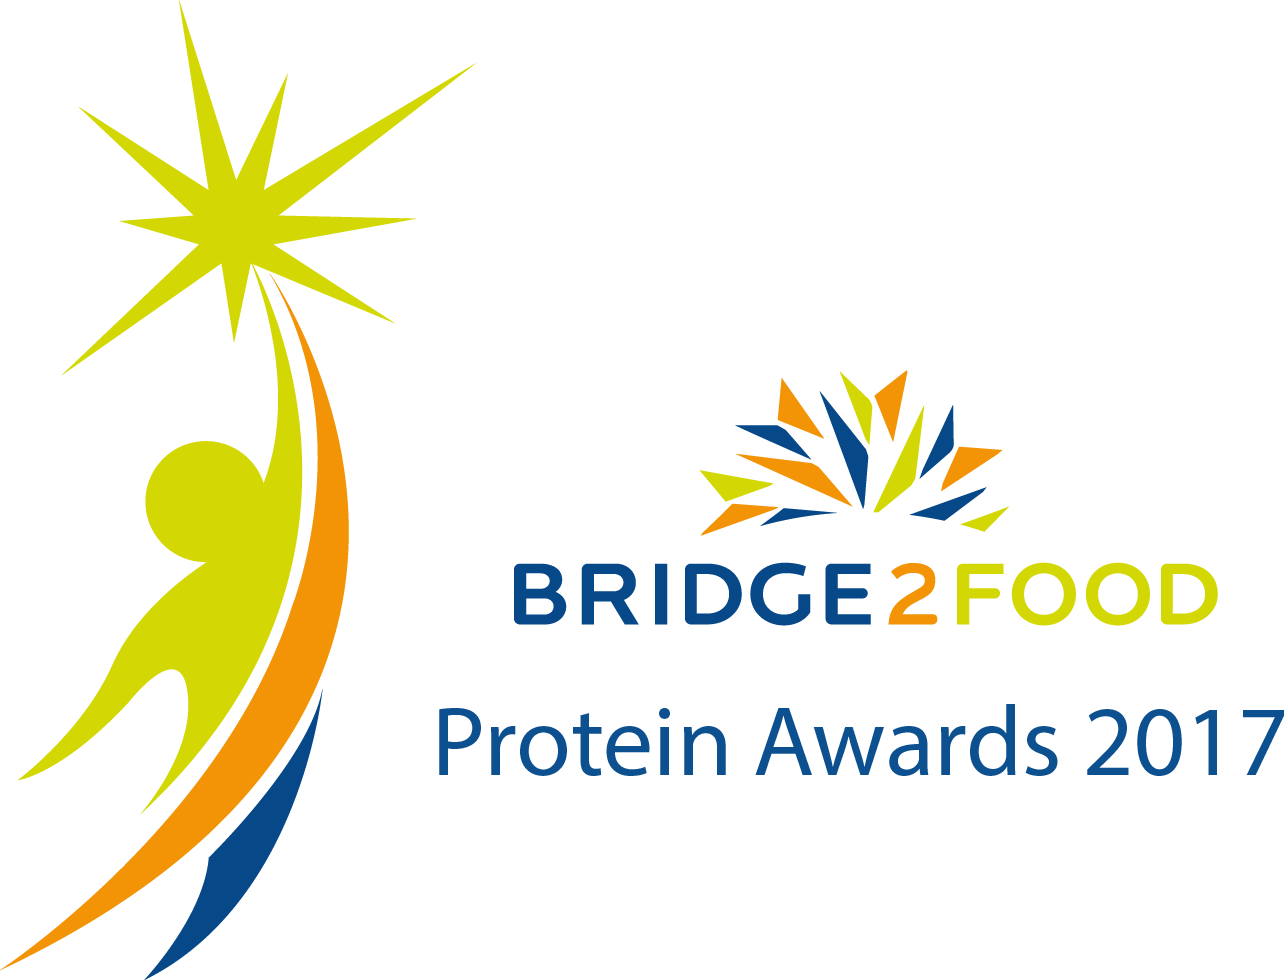 Bridge2Food Celebrates Global Innovations In Protein Industry